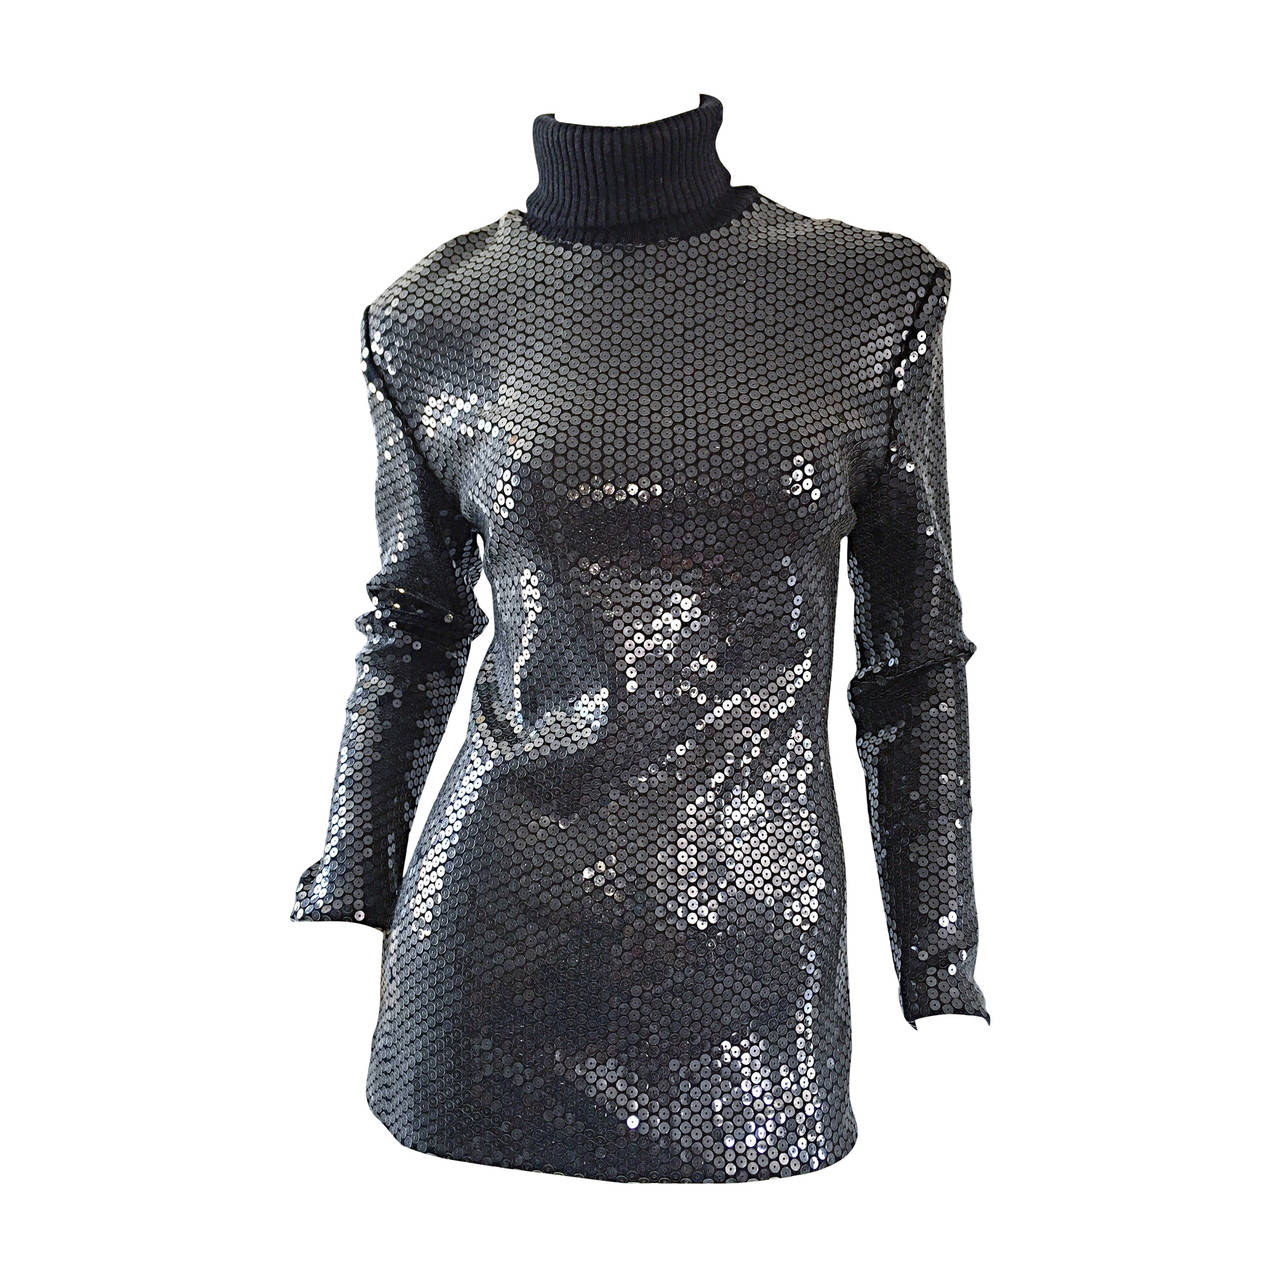 Rare Very Early Michael Kors Runway Sample Gray Sequins Turtleneck Sweater For Sale